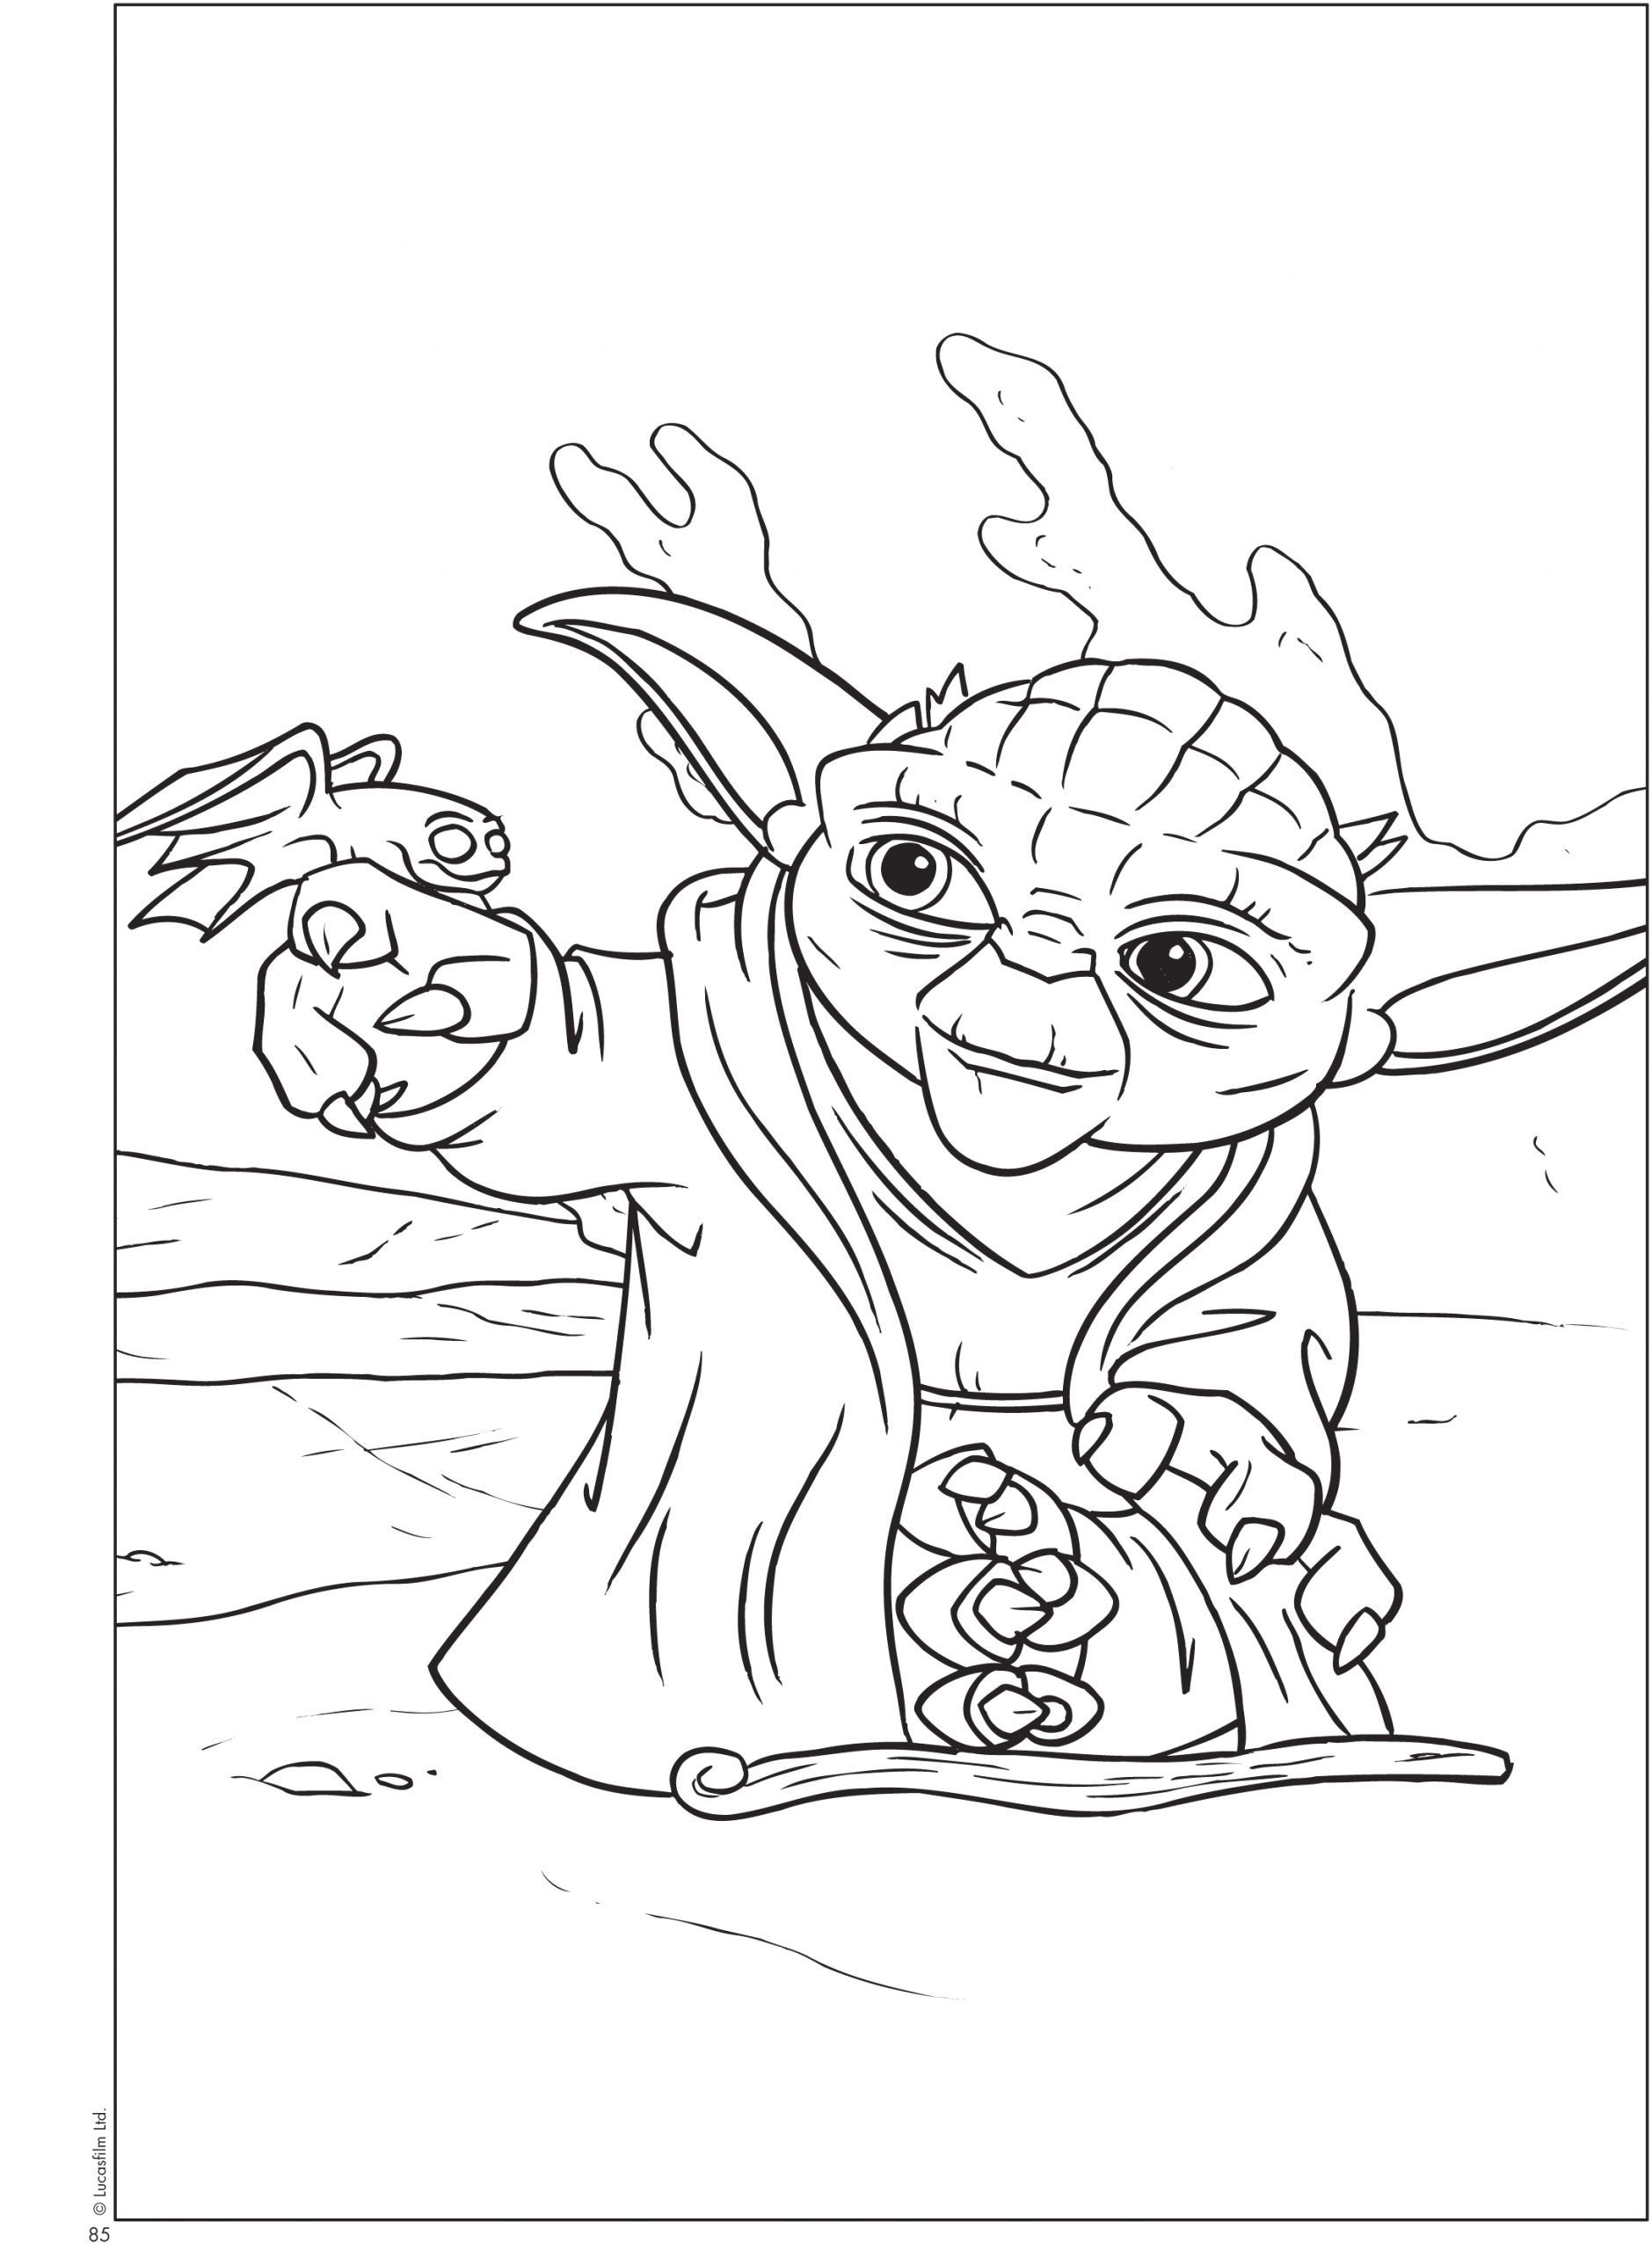 Star Wars Coloring Pages to Print Out Free Printable Star Wars Coloring Kids Coloring Kids